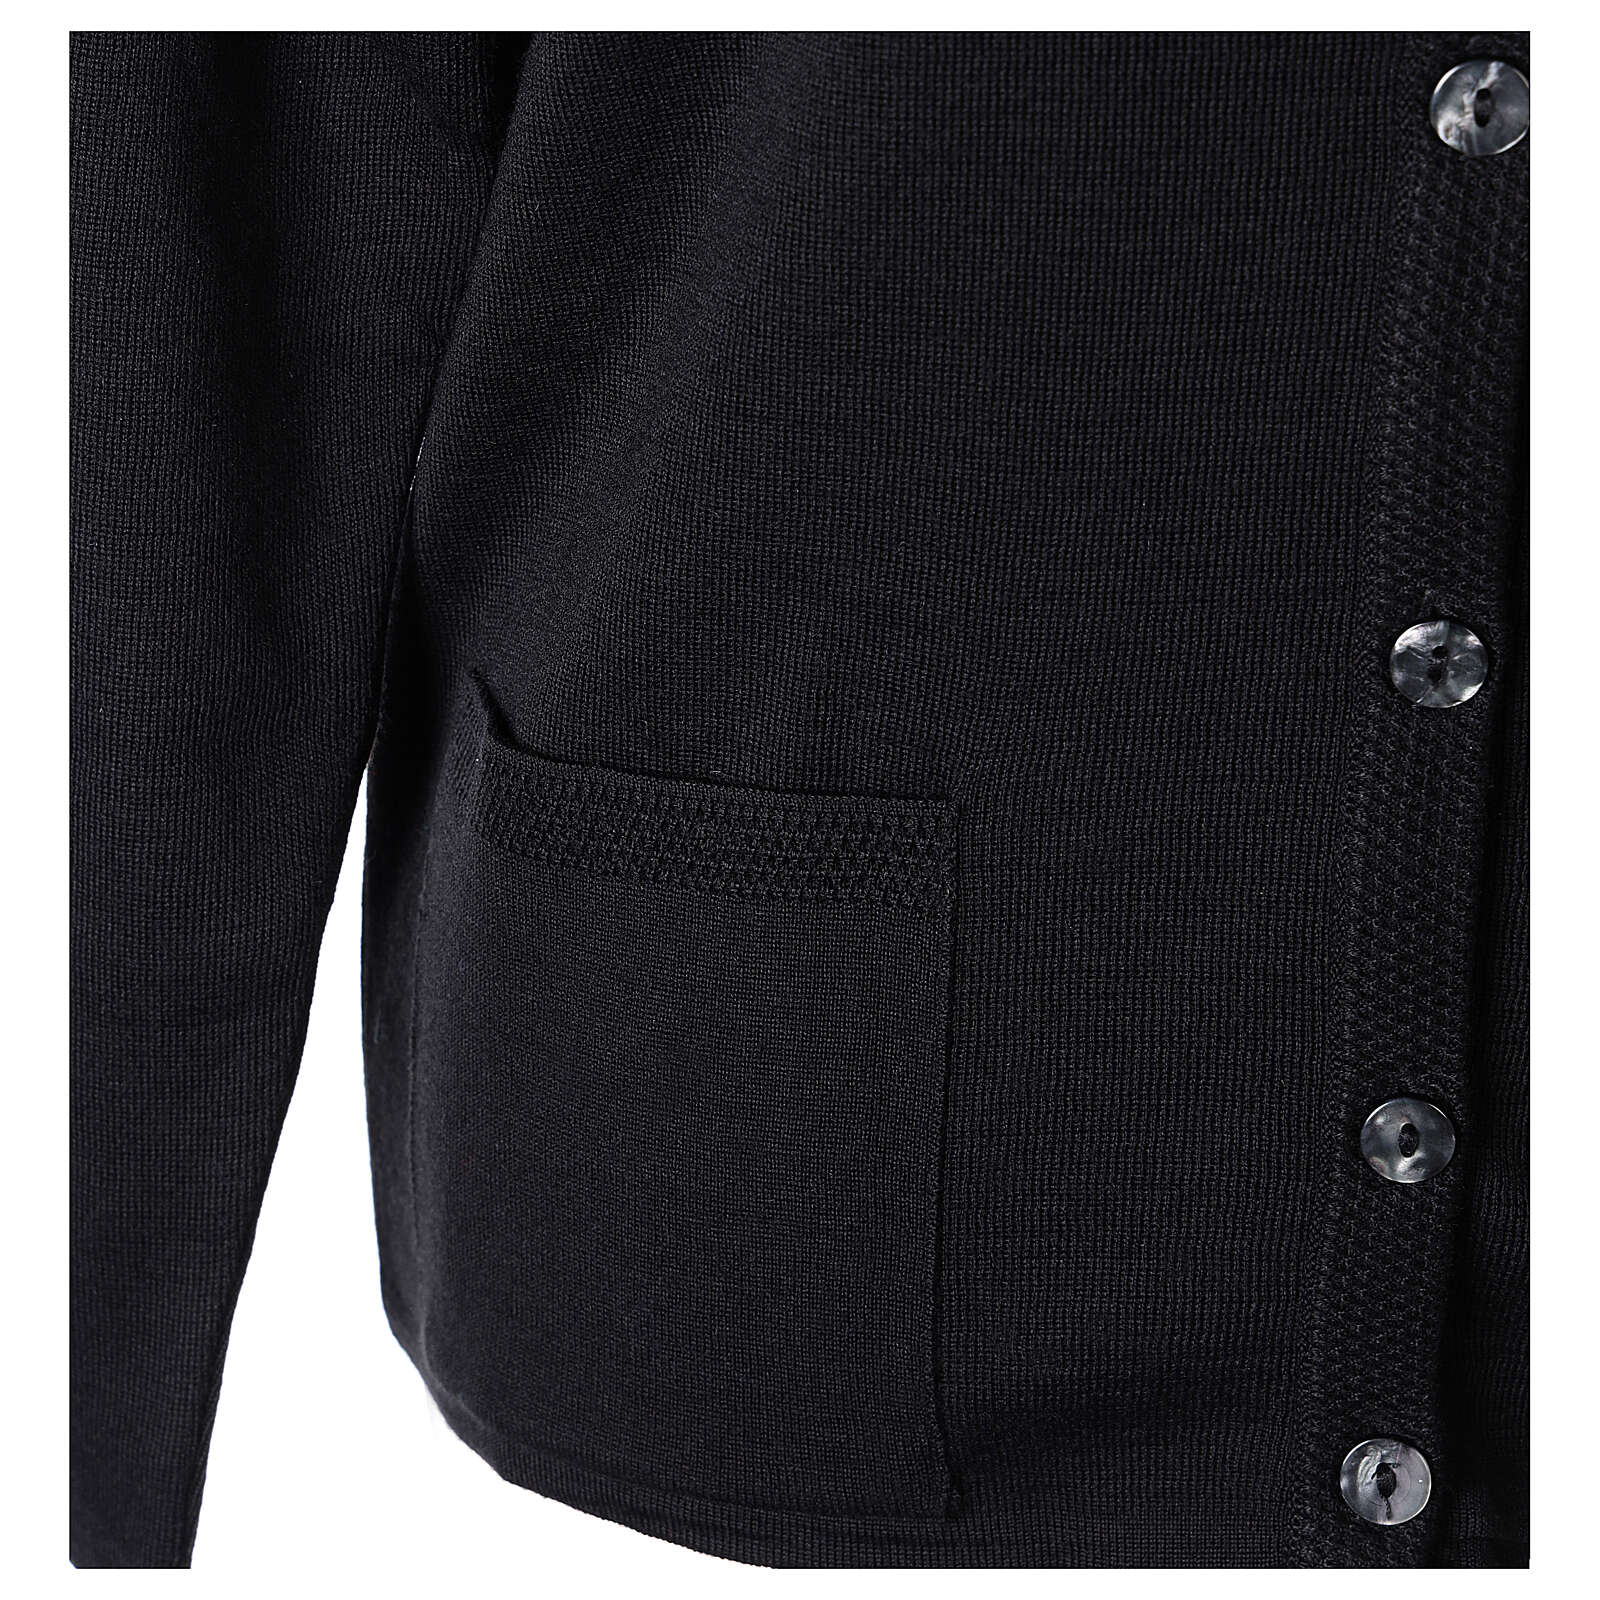 Crew neck black nun cardigan with pockets plain fabric 50% acrylic 50% merino wool In Primis 4